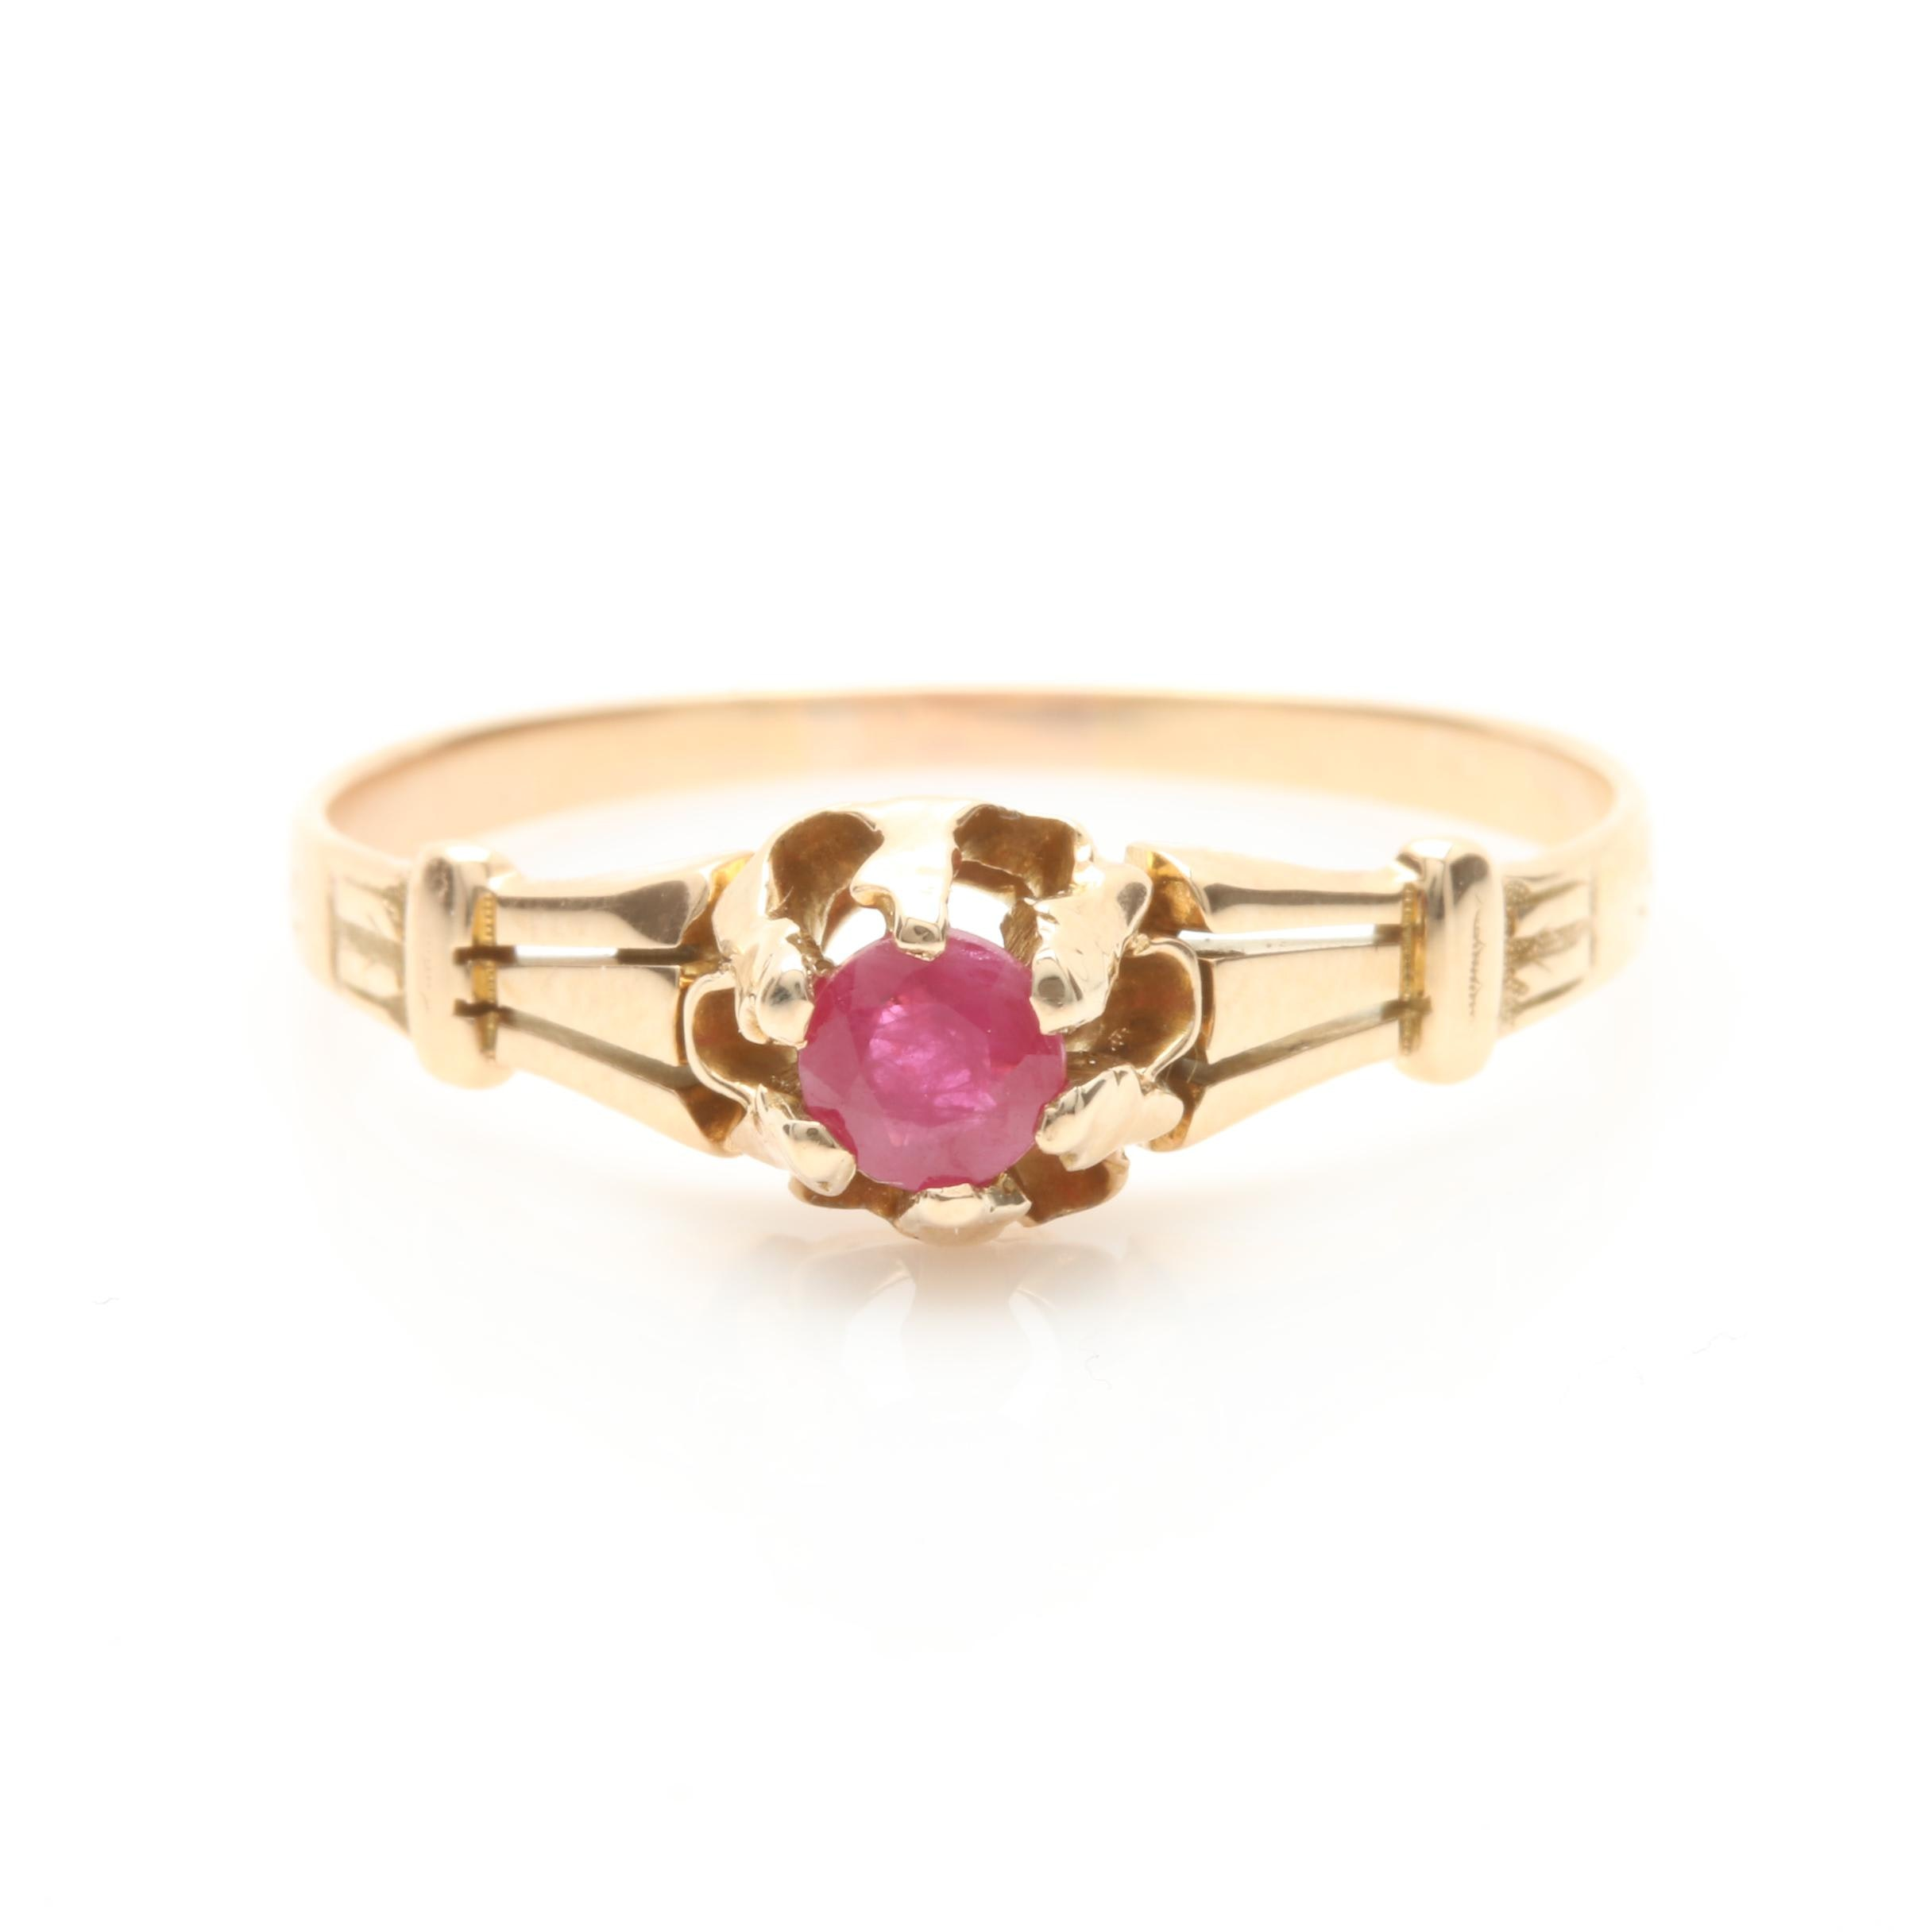 Late Victorian 14K Yellow Gold Ruby Ring